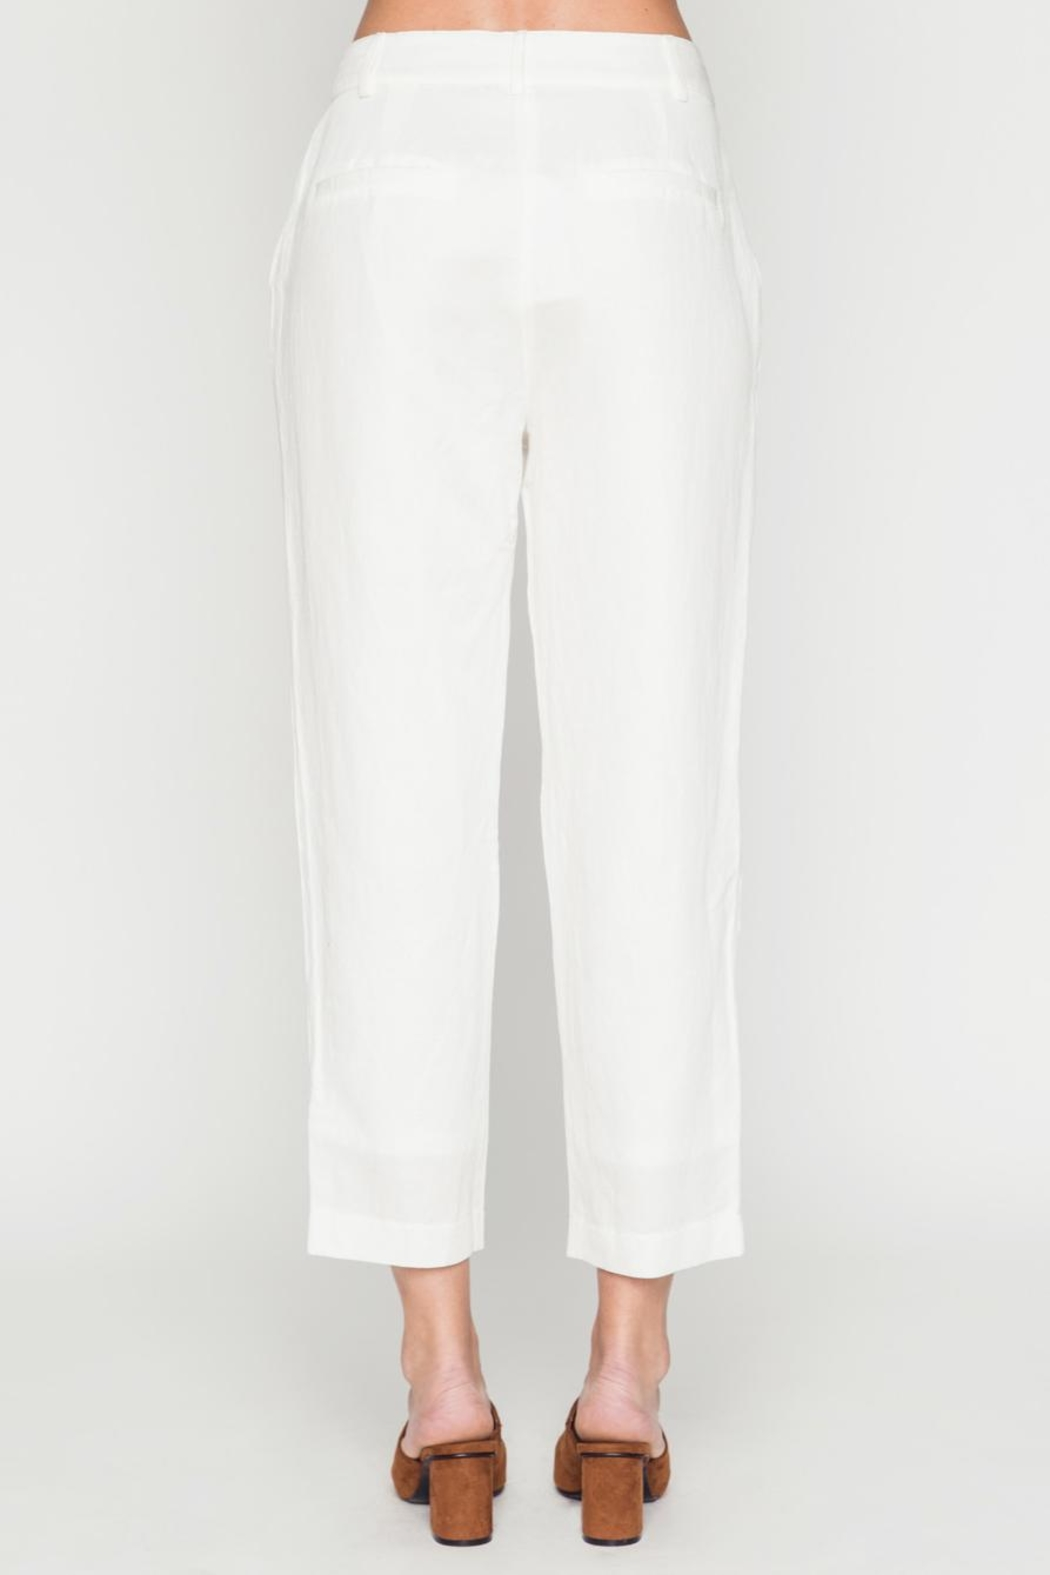 Movint Hight Waisted Pants - Side Cropped Image